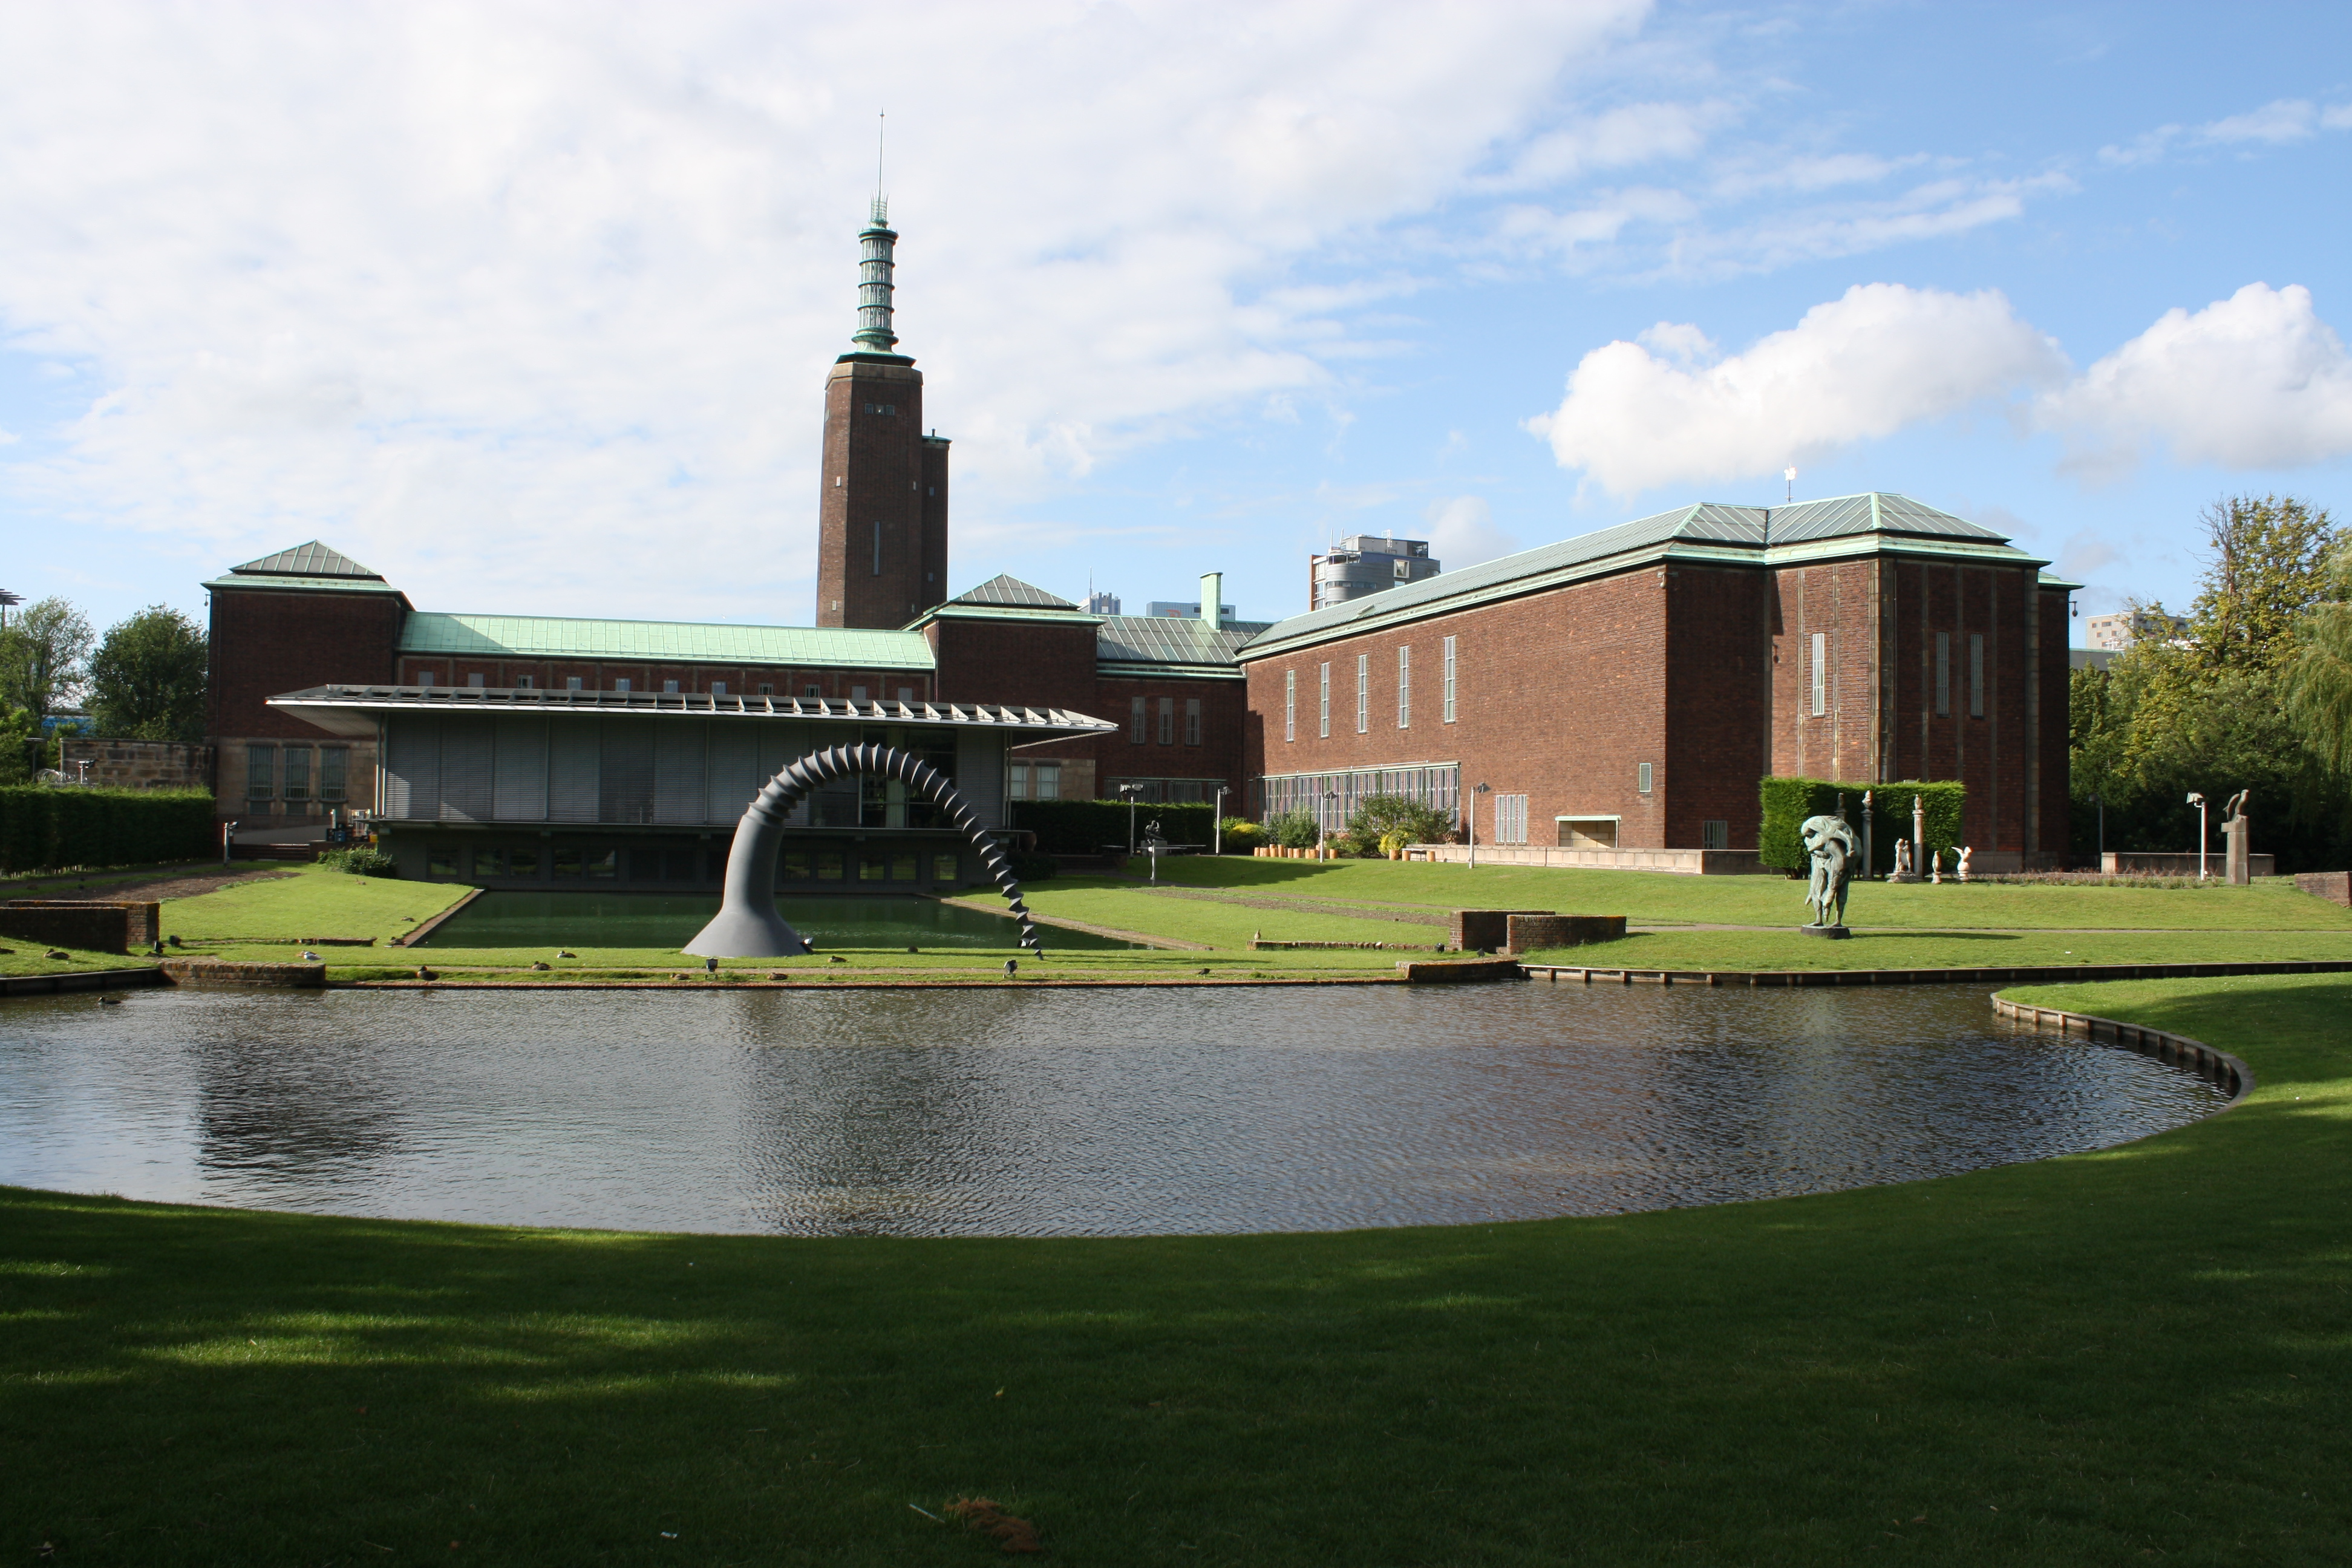 Museum Boijmans, One of the top attractions in Rotterdam